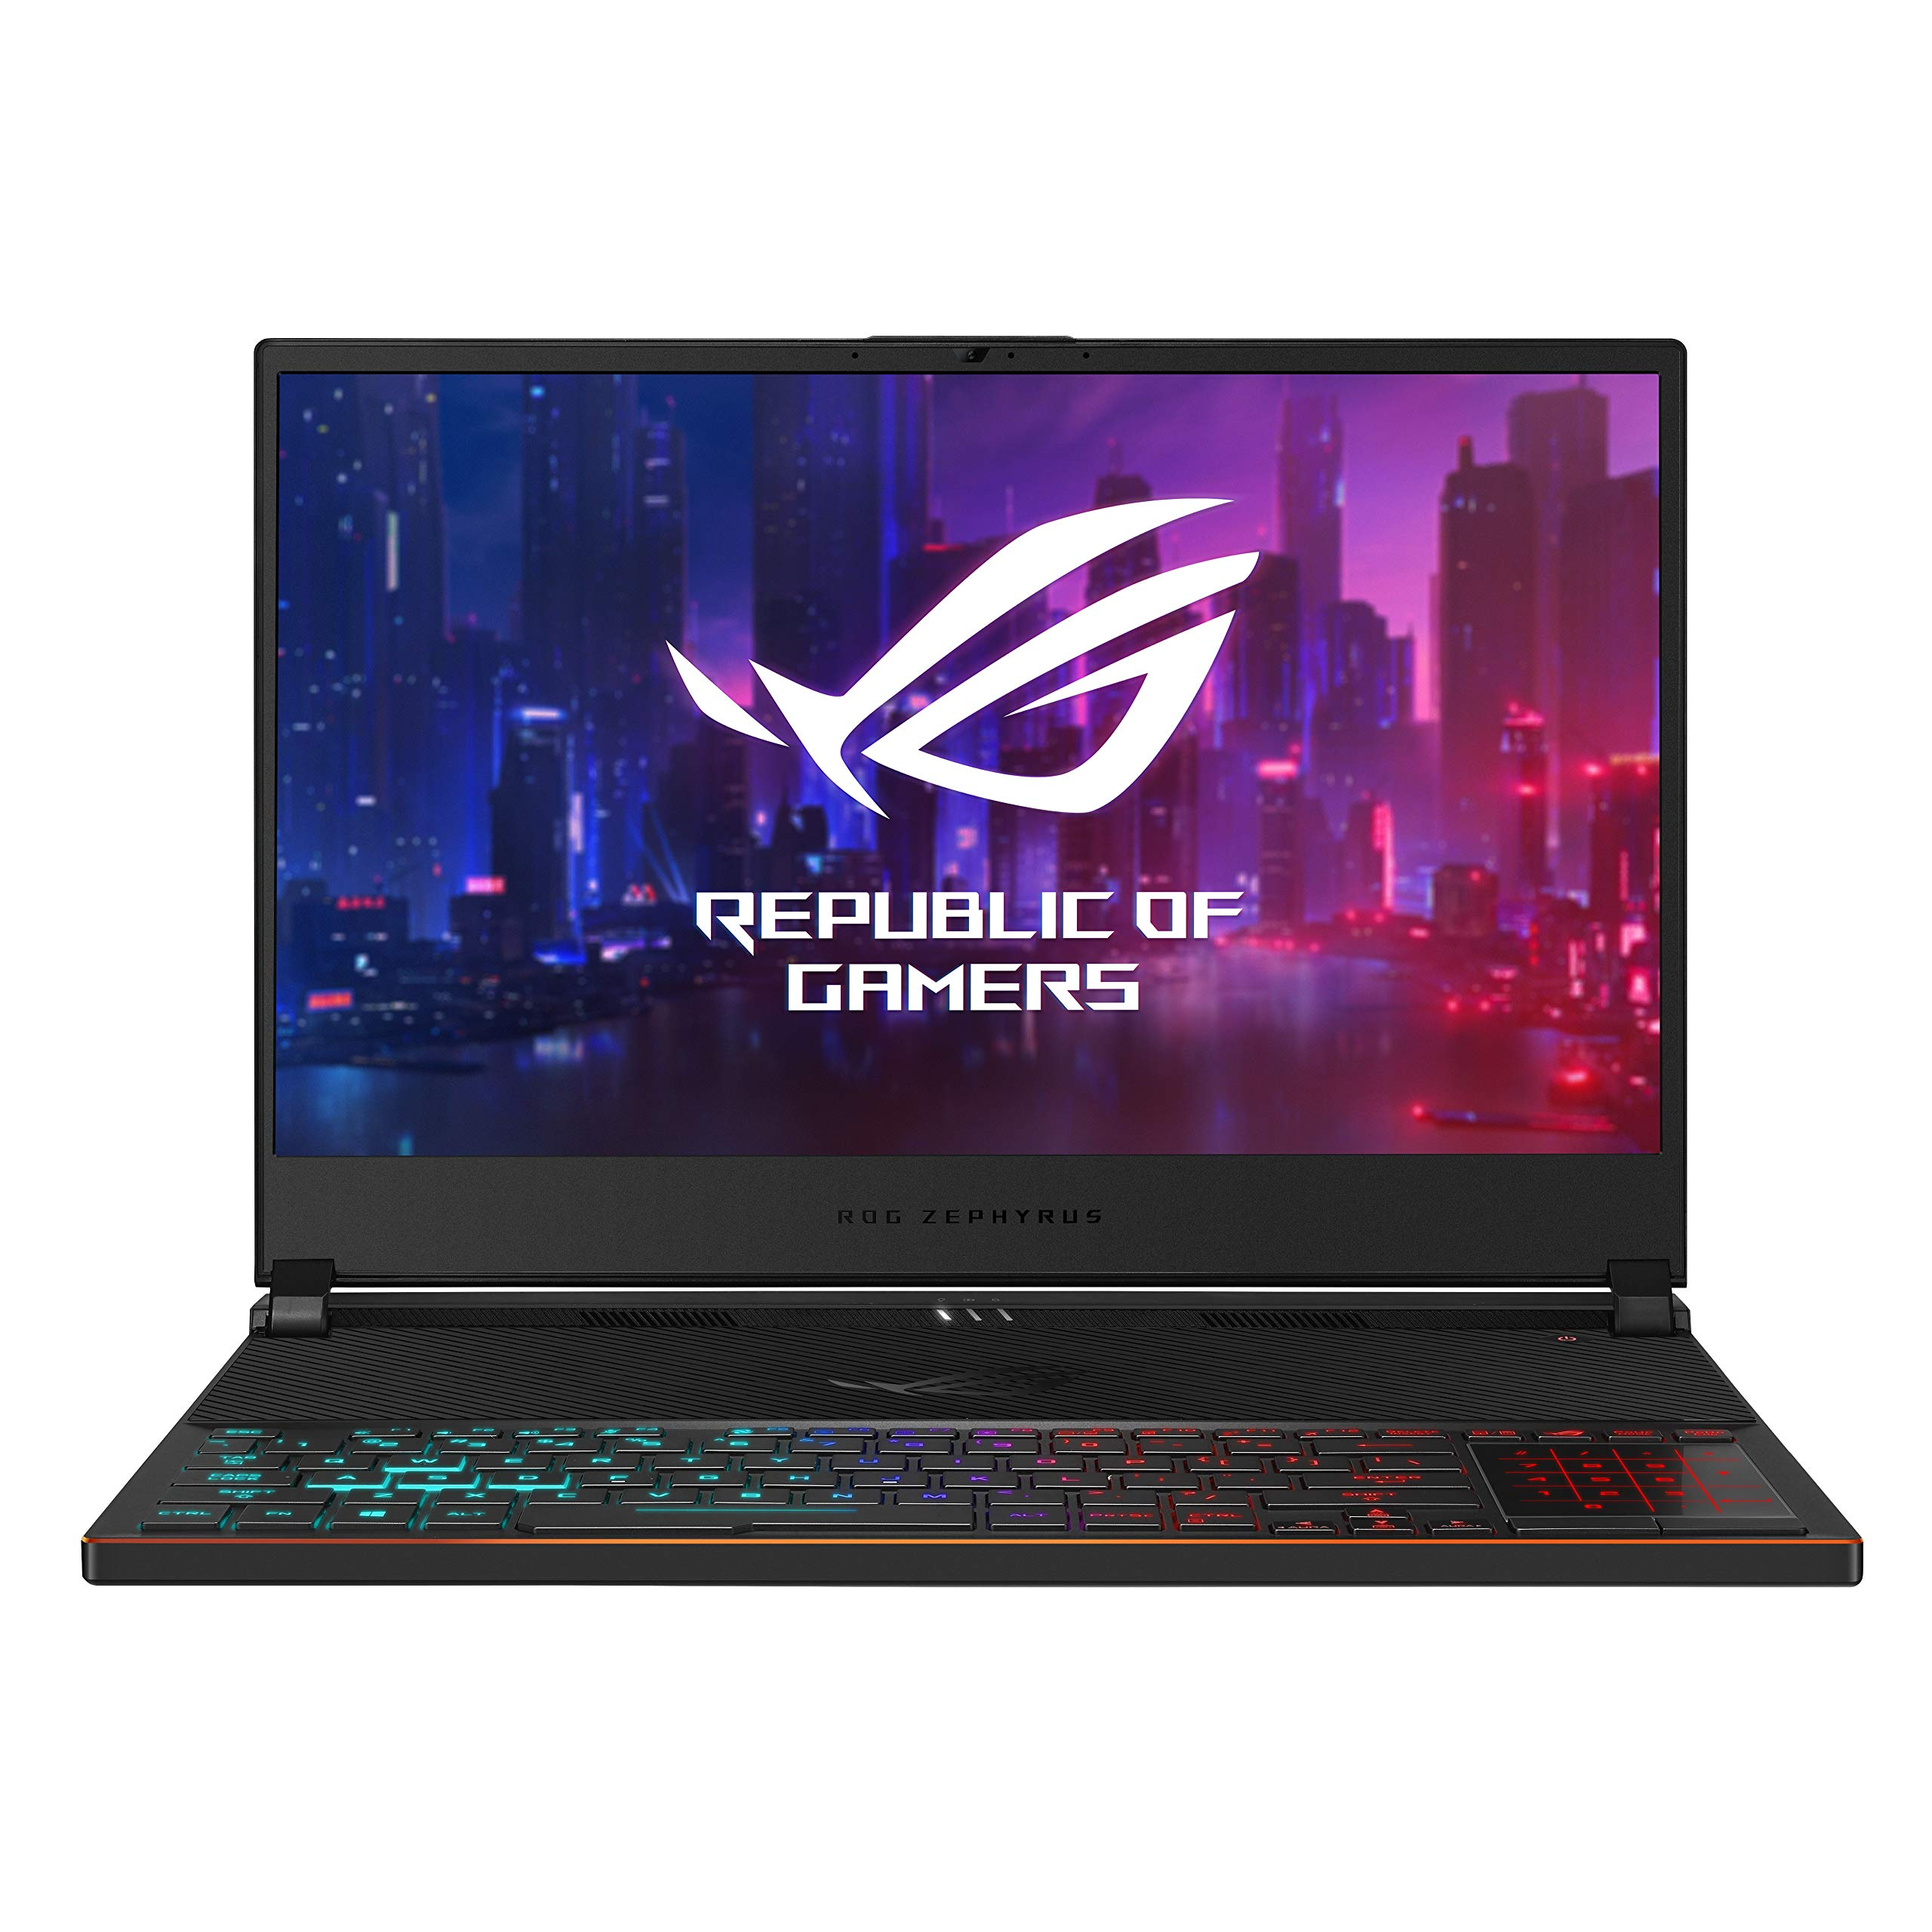 "ASUS ROG Zephyrus S Ultra Slim Gaming Laptop, 15.6"" 144Hz IPS Type FHD, GeForce RTX 2070, Intel Core i7-8750H, 16GB DDR4, 512GB PCIe NVMe SSD, Aura Sync RGB, Windows 10 64-bit, GX531GW-AS76 .62"" Thin by ASUS (Image #2)"